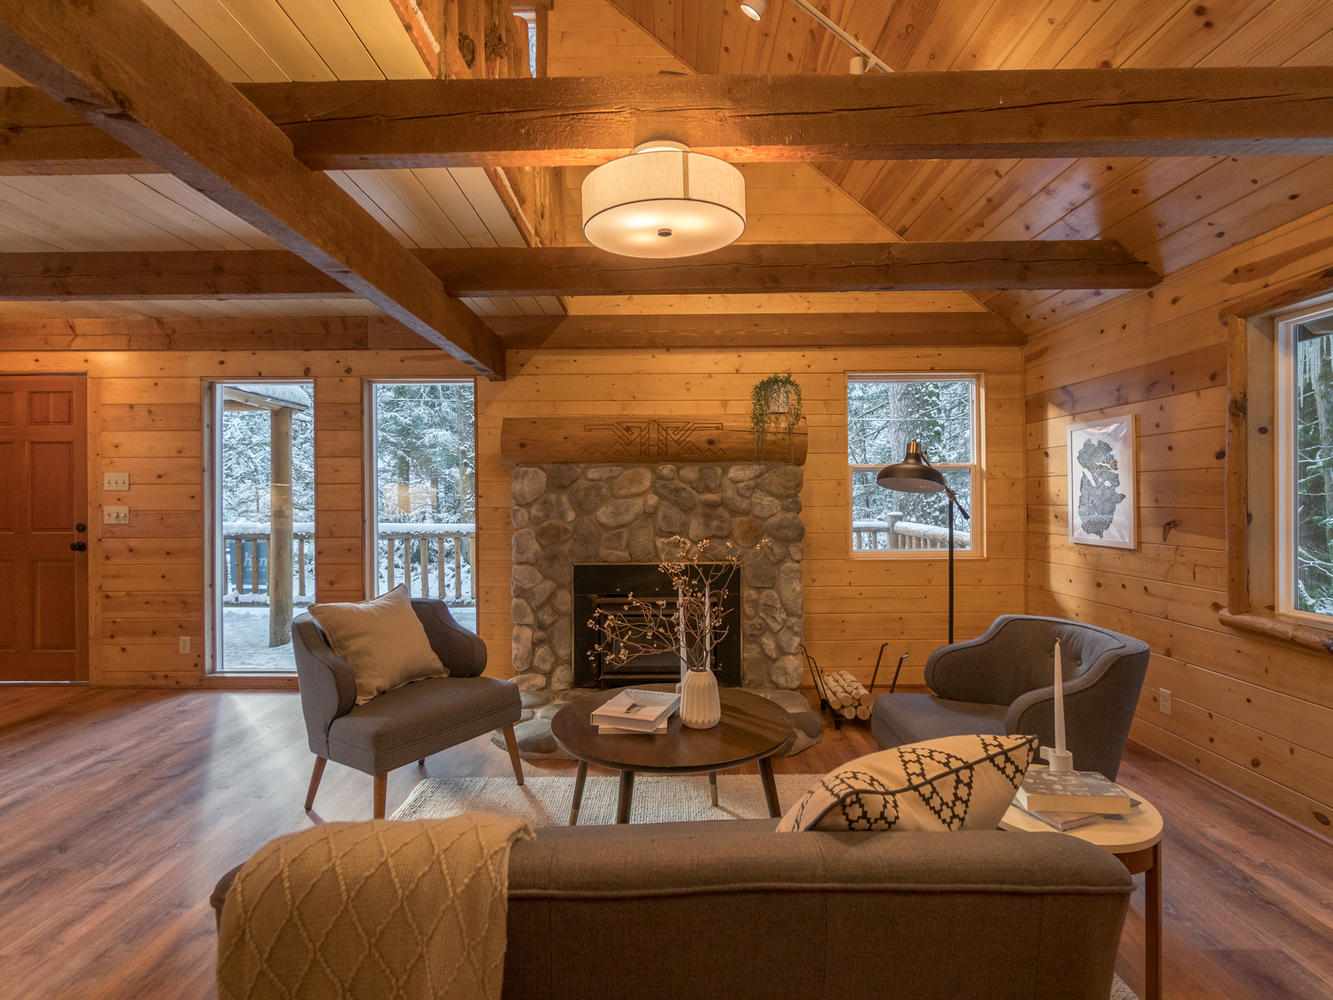 Ski cabin with stone fireplace and open wood beams